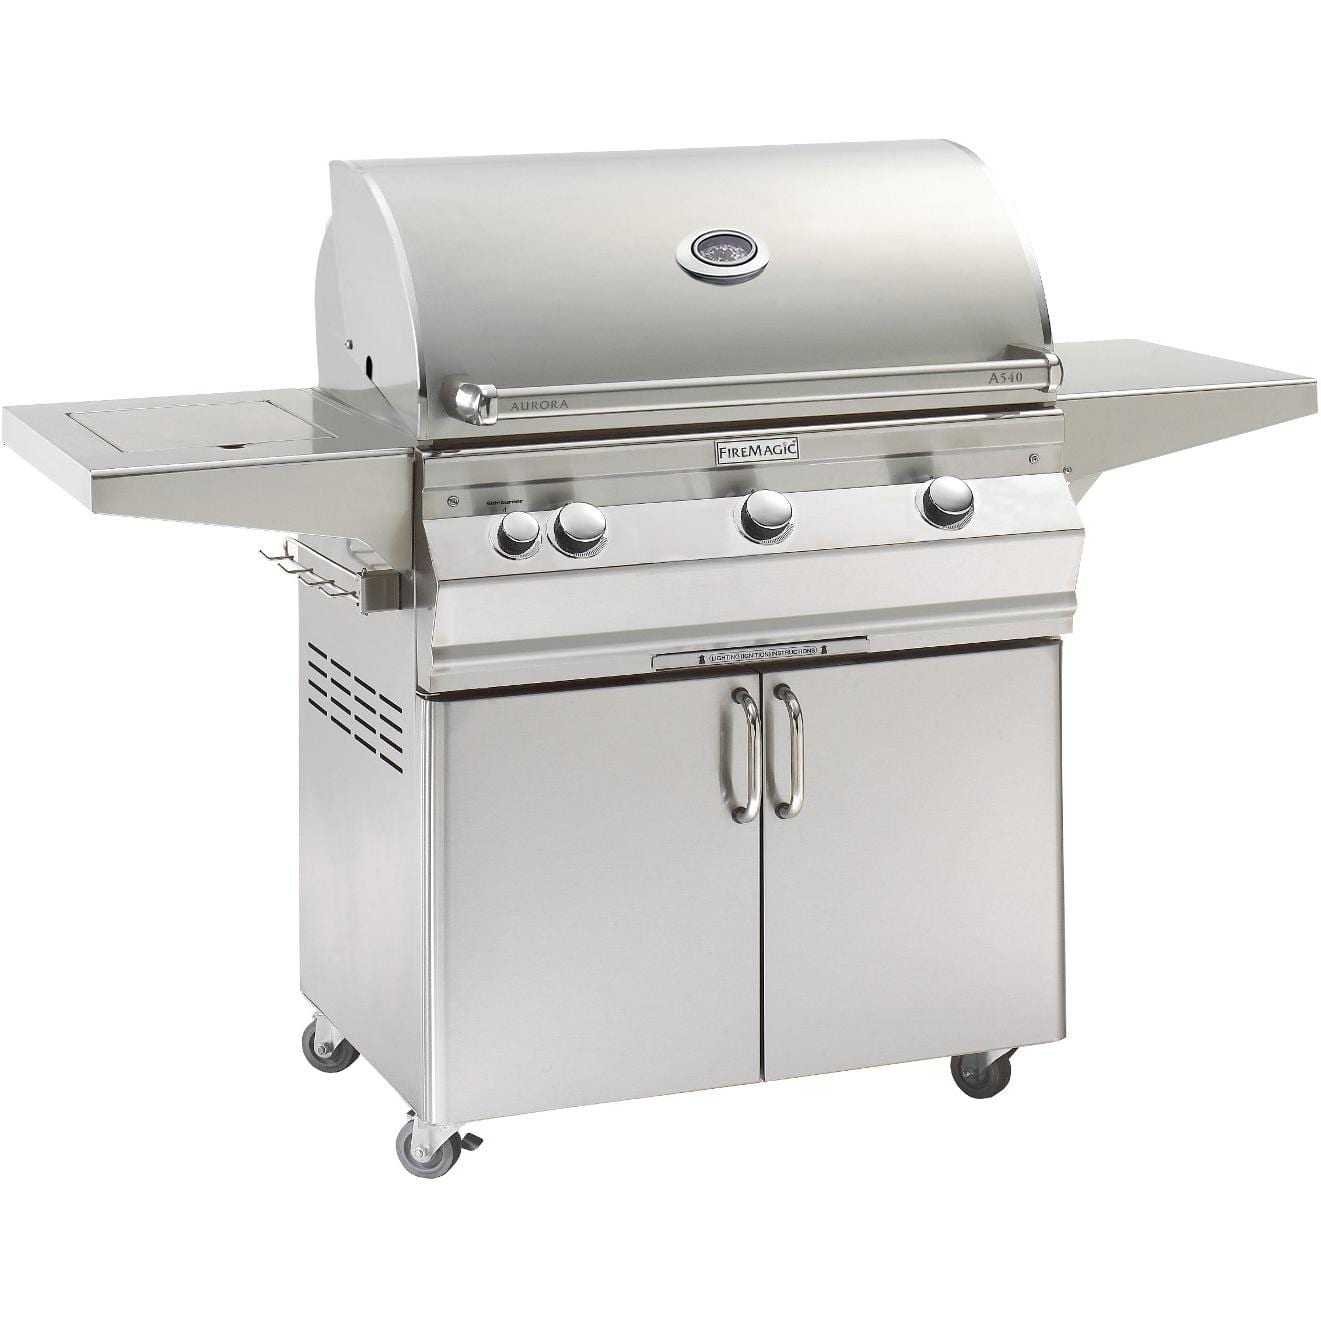 outdoor kitchen with freestanding grill commercial supply store fire magic aurora a540s 30 inch natural gas